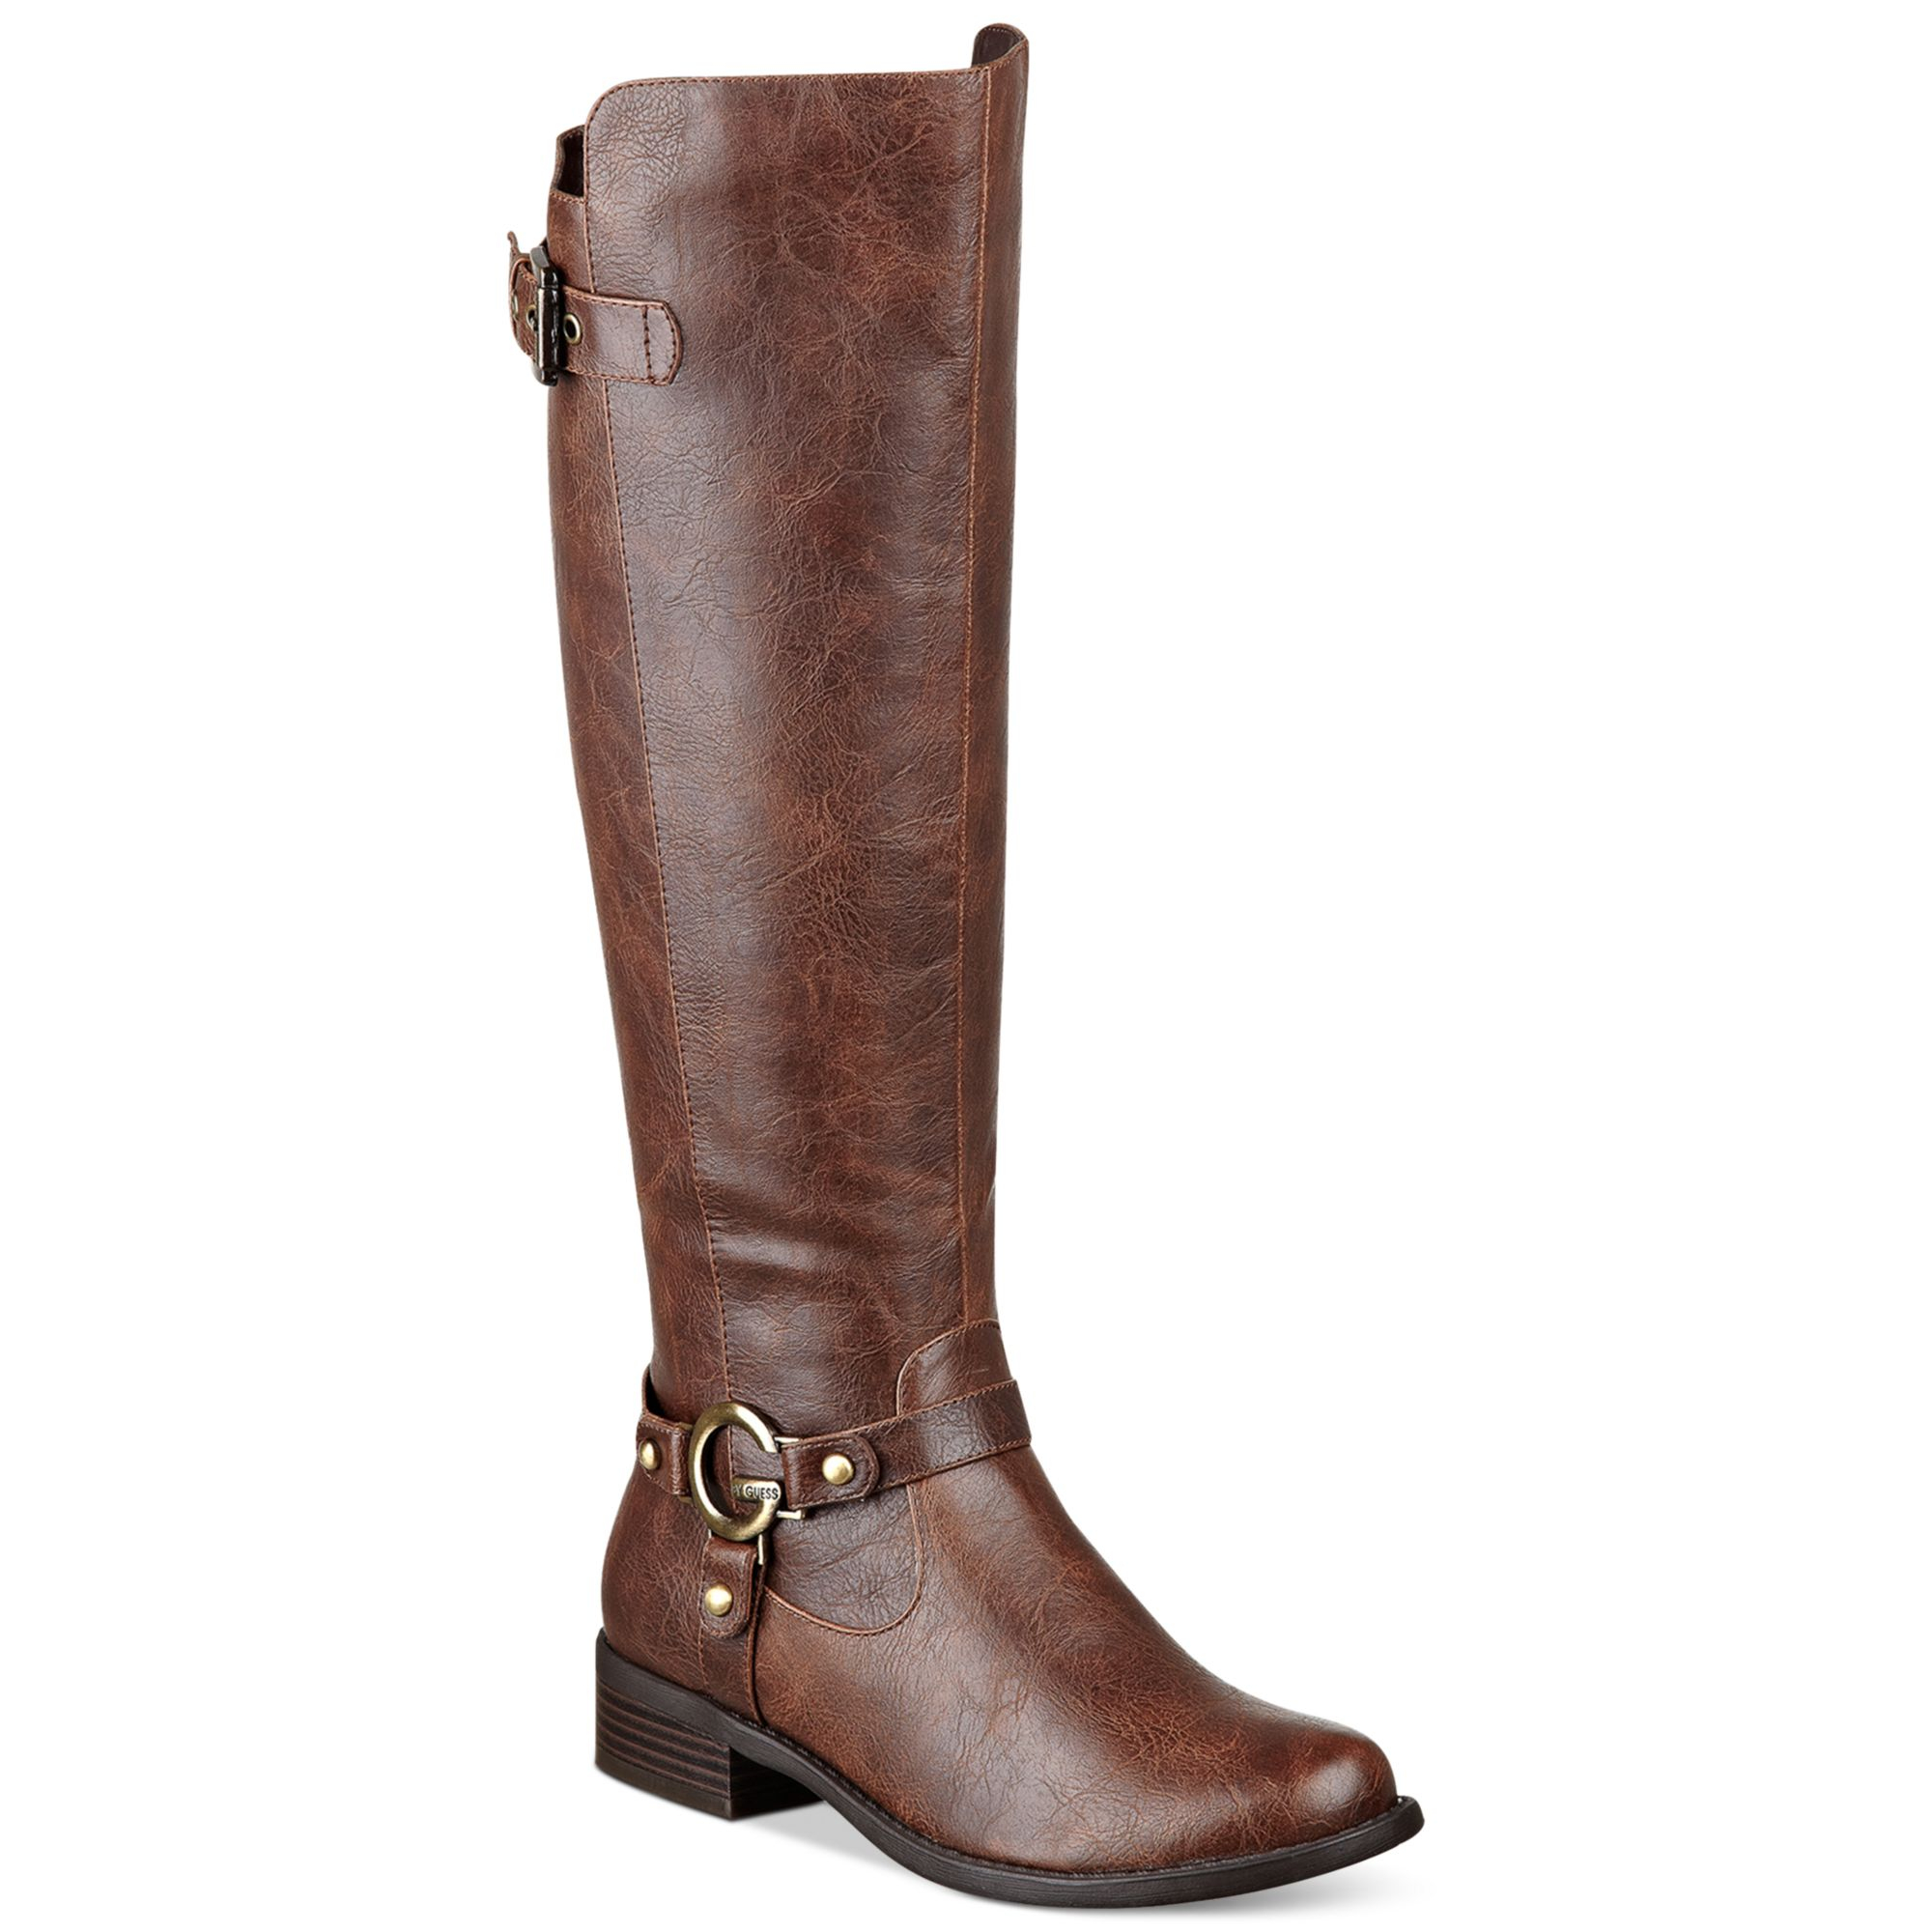 Shop Payless for a large selection of boots for women across thigh-high boots, booties, snow boots, rain boots, ankle boots, wide-calf boots, and many more! Payless also carries tall boots and riding boots, Brown Tan White Gold Silver Grey price $10 - $20; $20 - $30; $30 - $